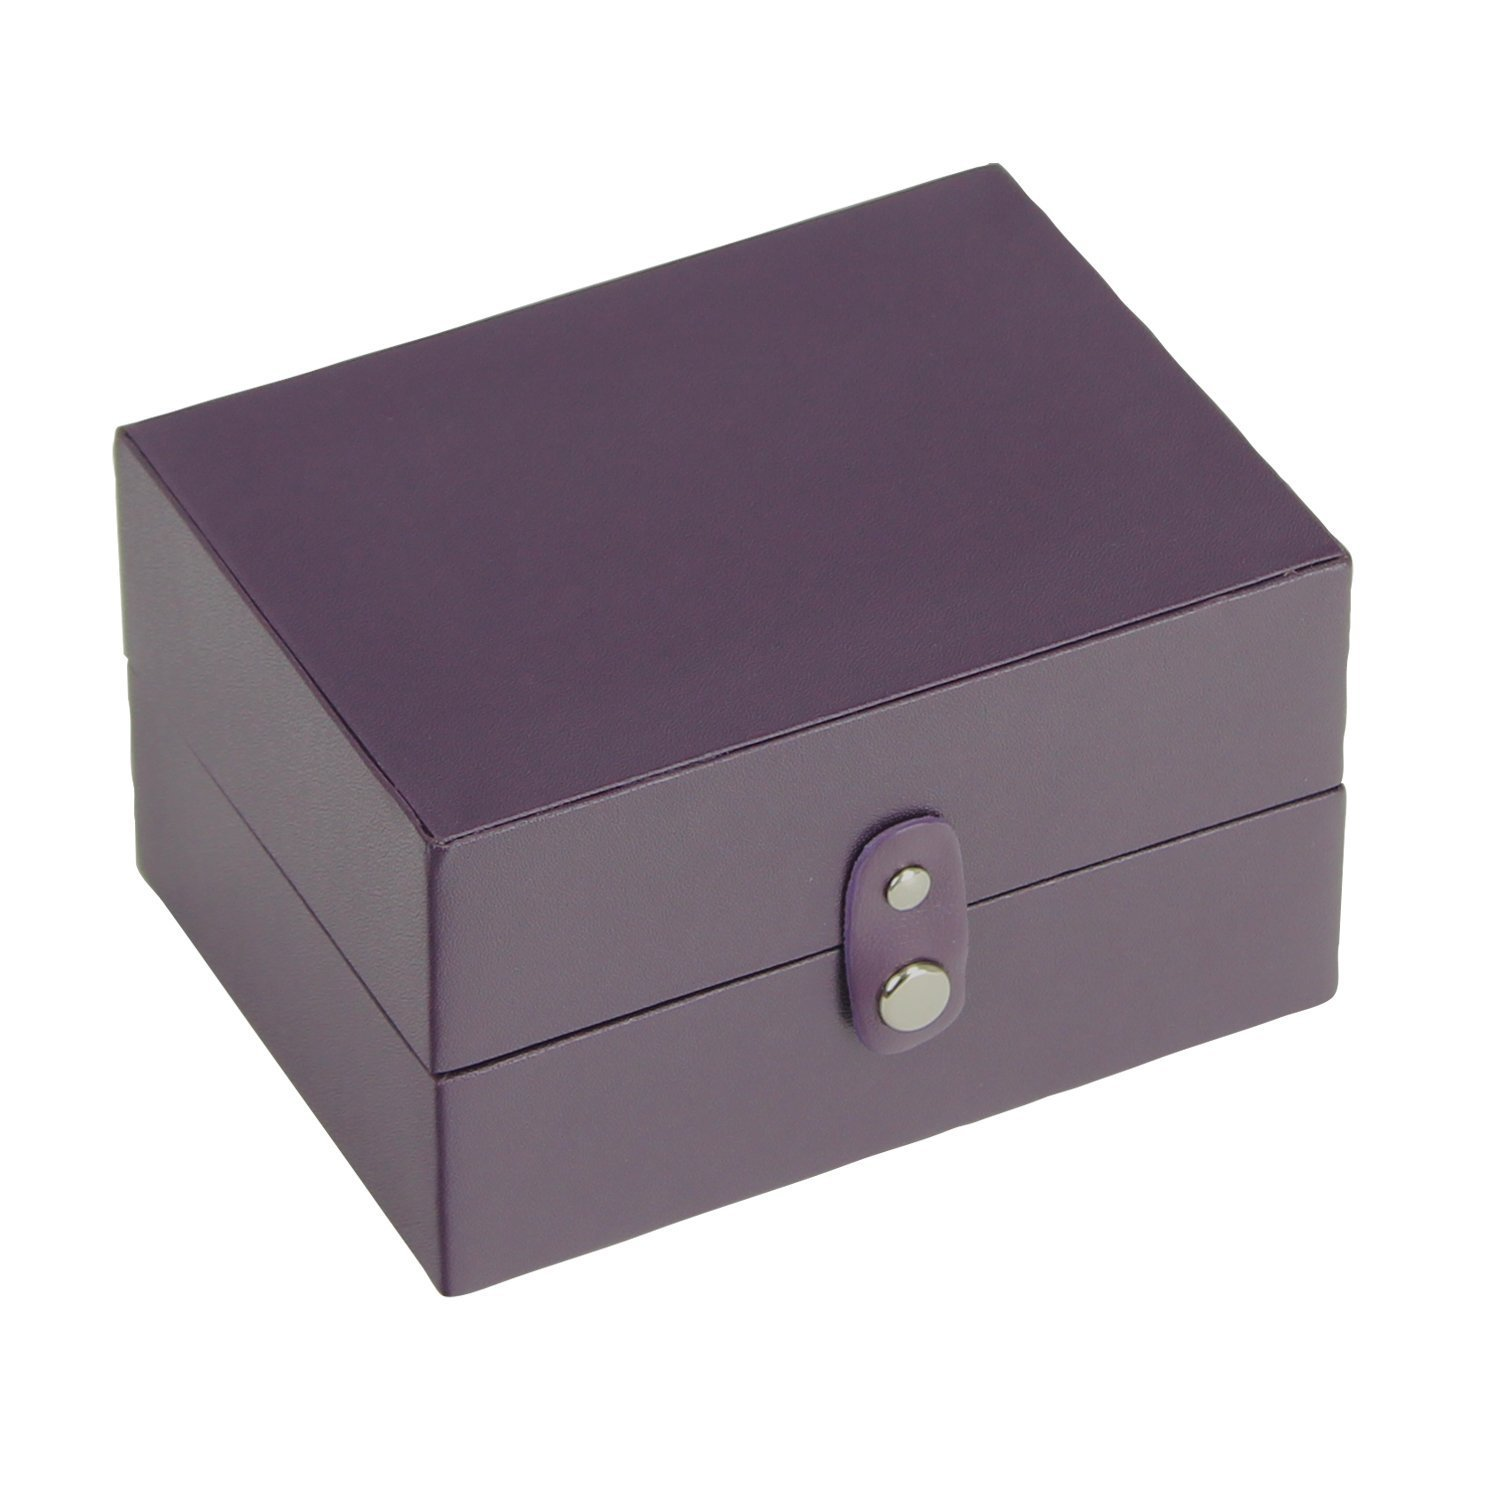 STACKERS ACCESSORY – viola Travel Box STACKER ACCESSORY with viola Lining Velvet Finish Lining viola a3e61e